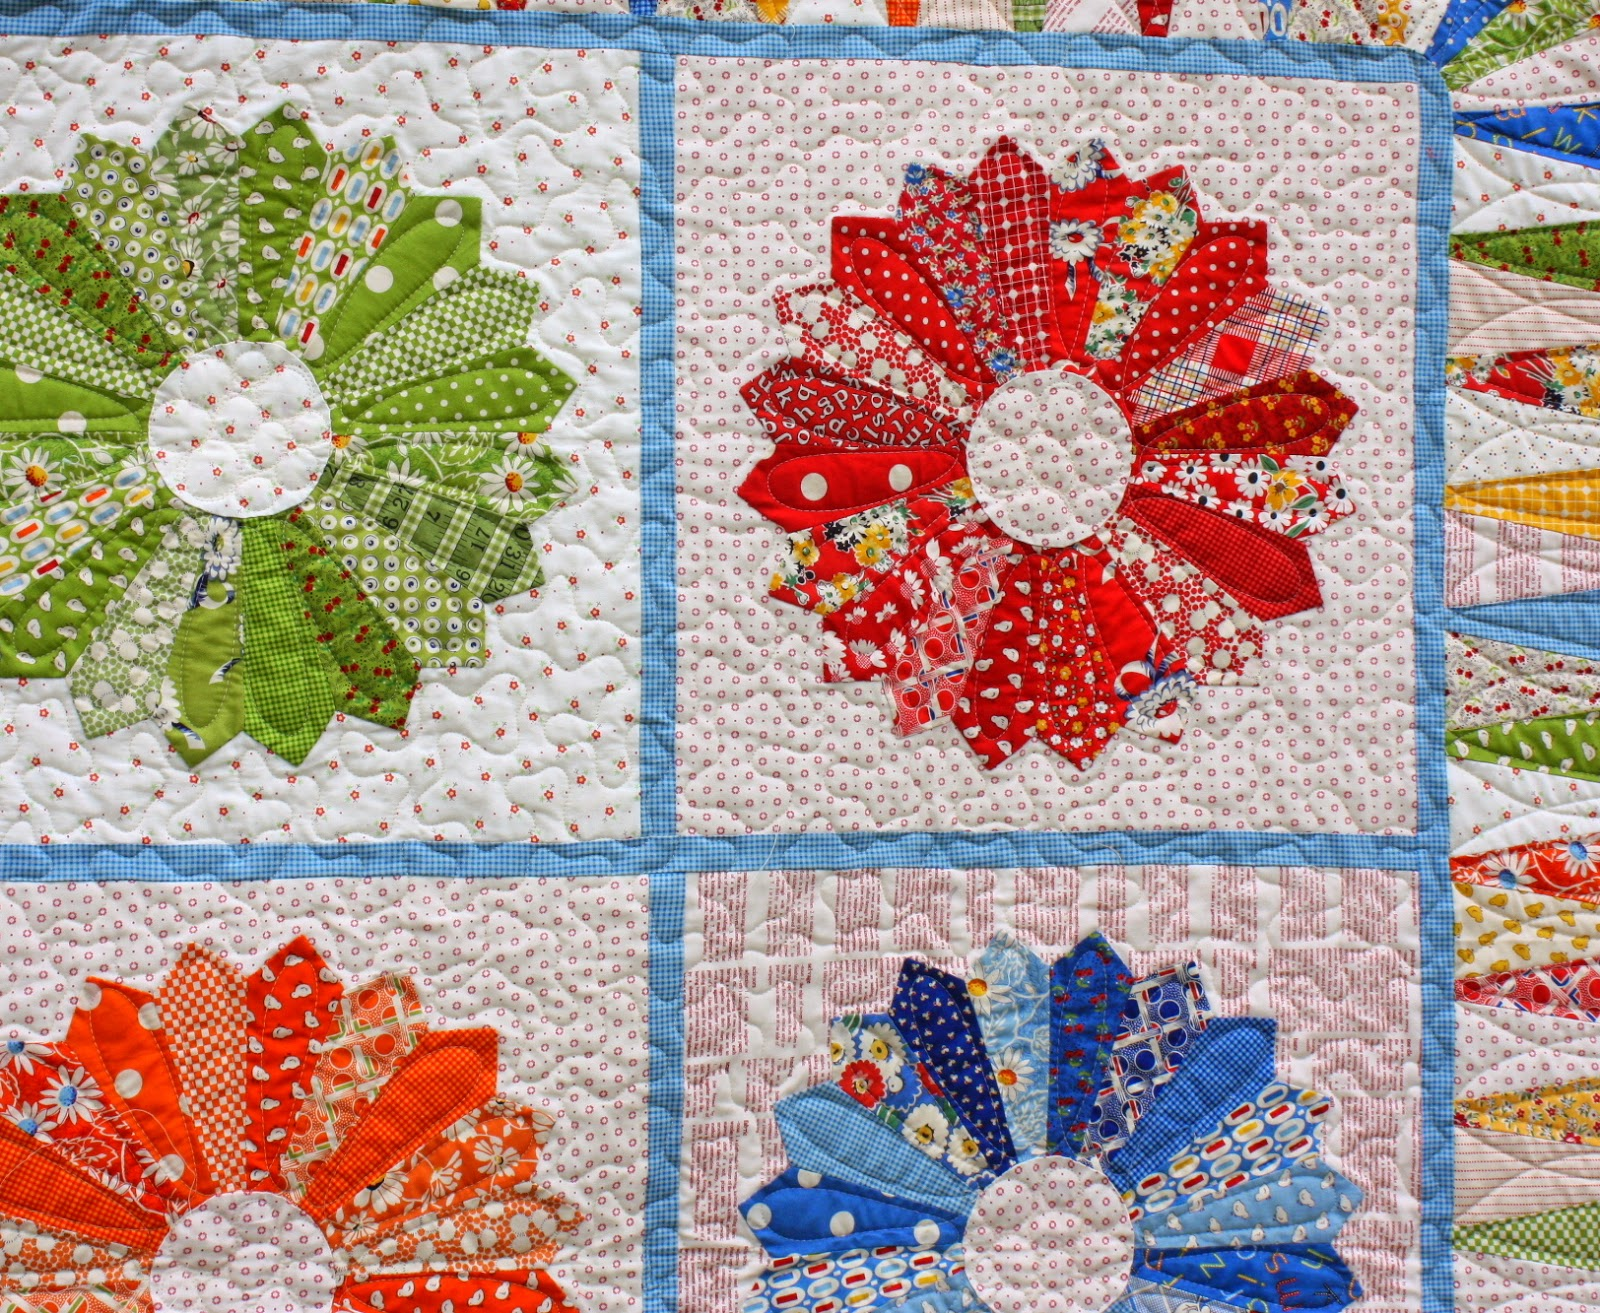 New Dresden Quilt Quilting The New Classics Book Diary